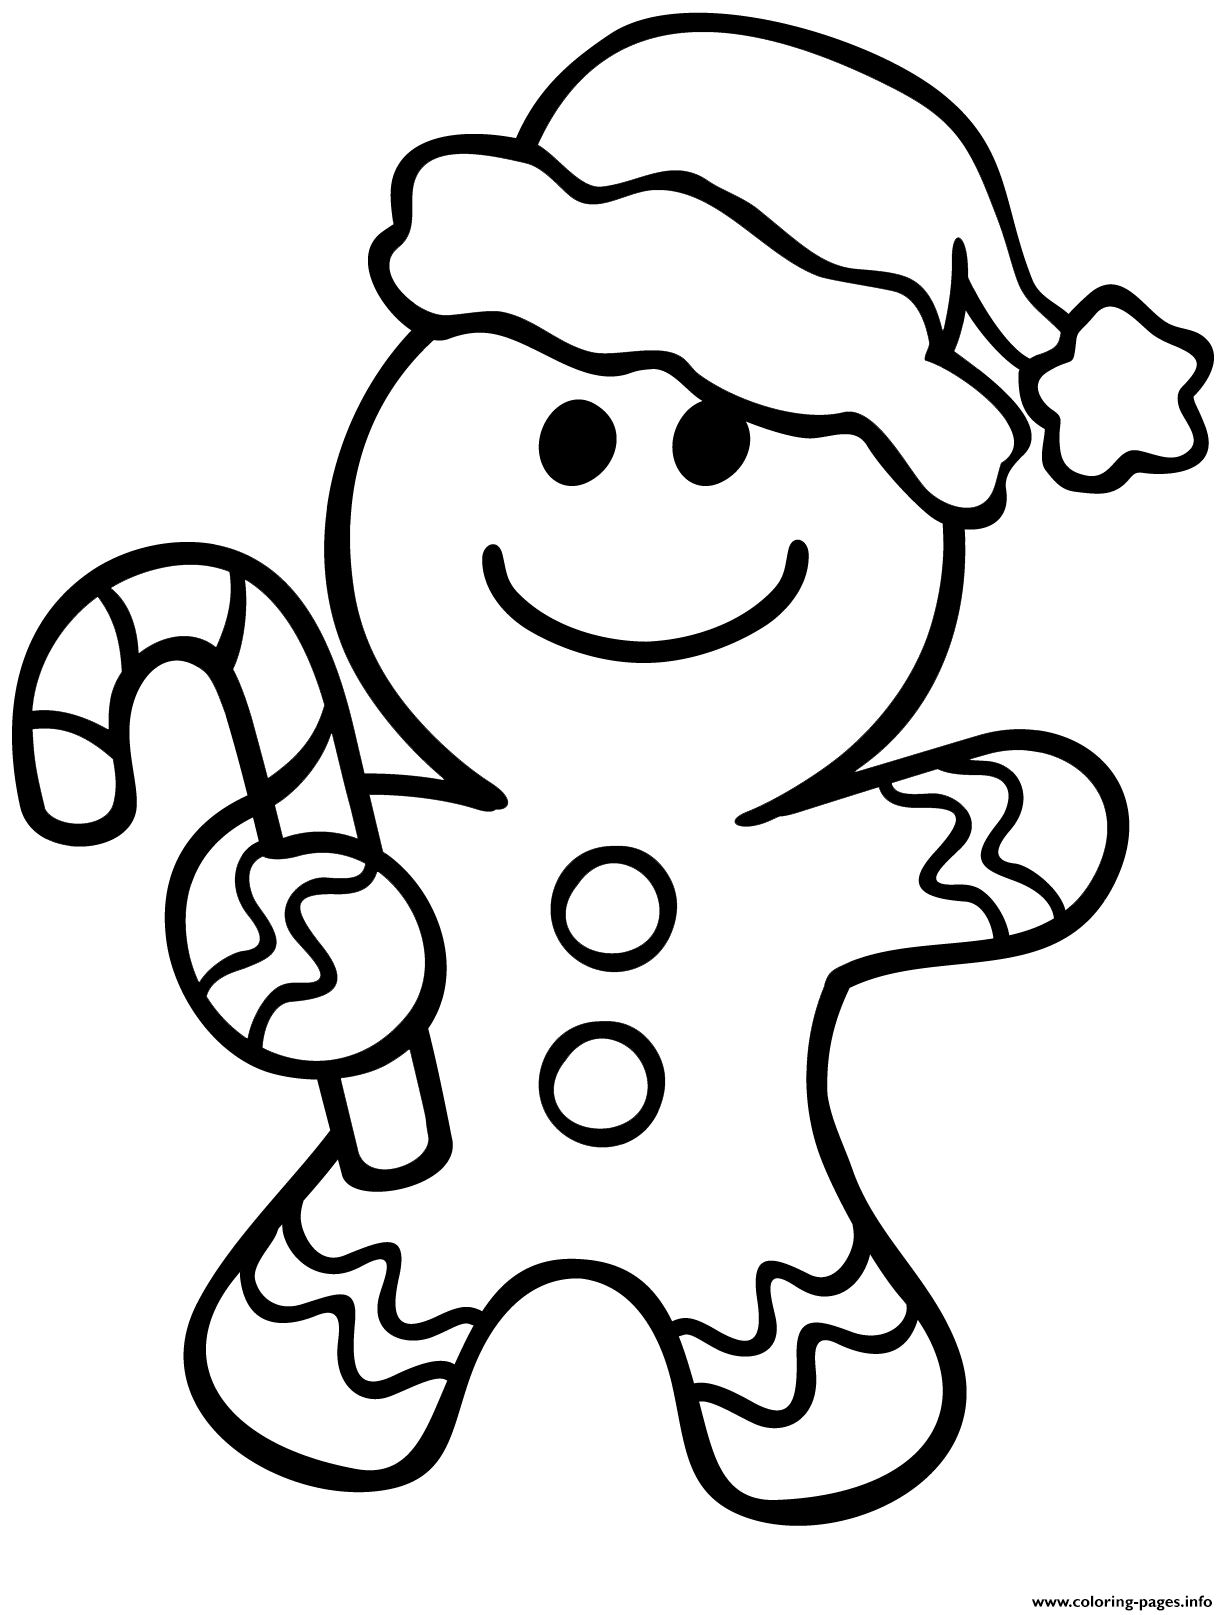 Gingerbread Man Christmas Coloring Pages Printable